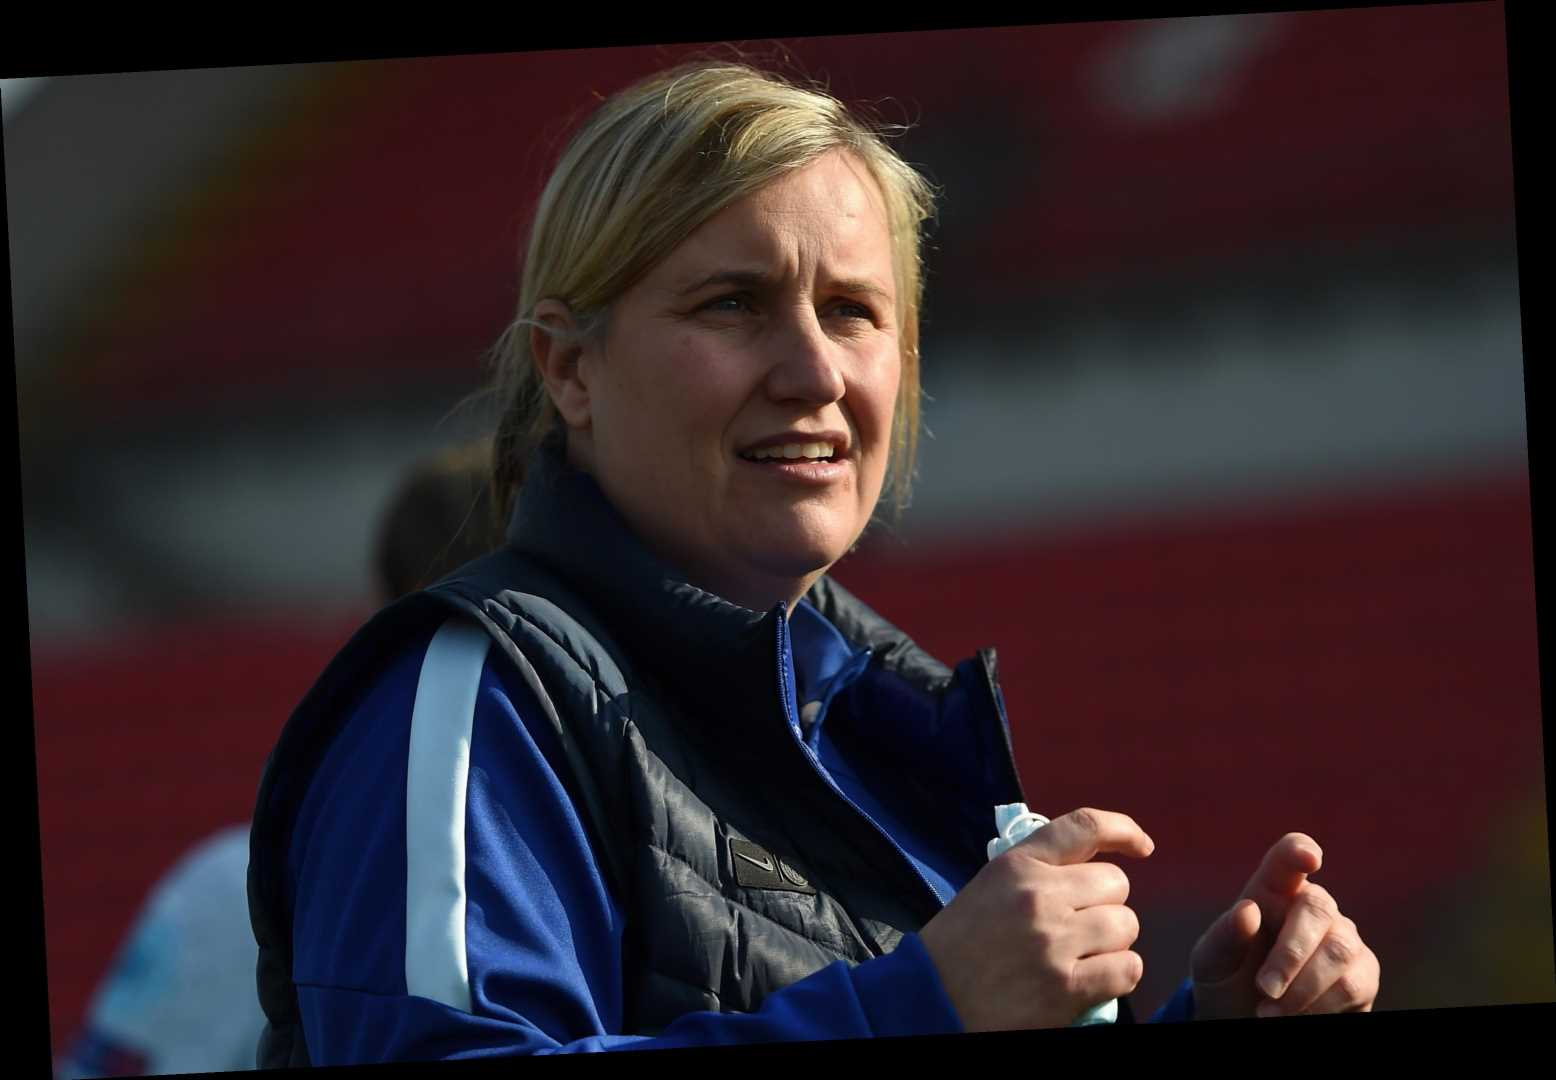 Chelsea boss Hayes expects Bristol City to make Conti Cup final 'extremely difficult'